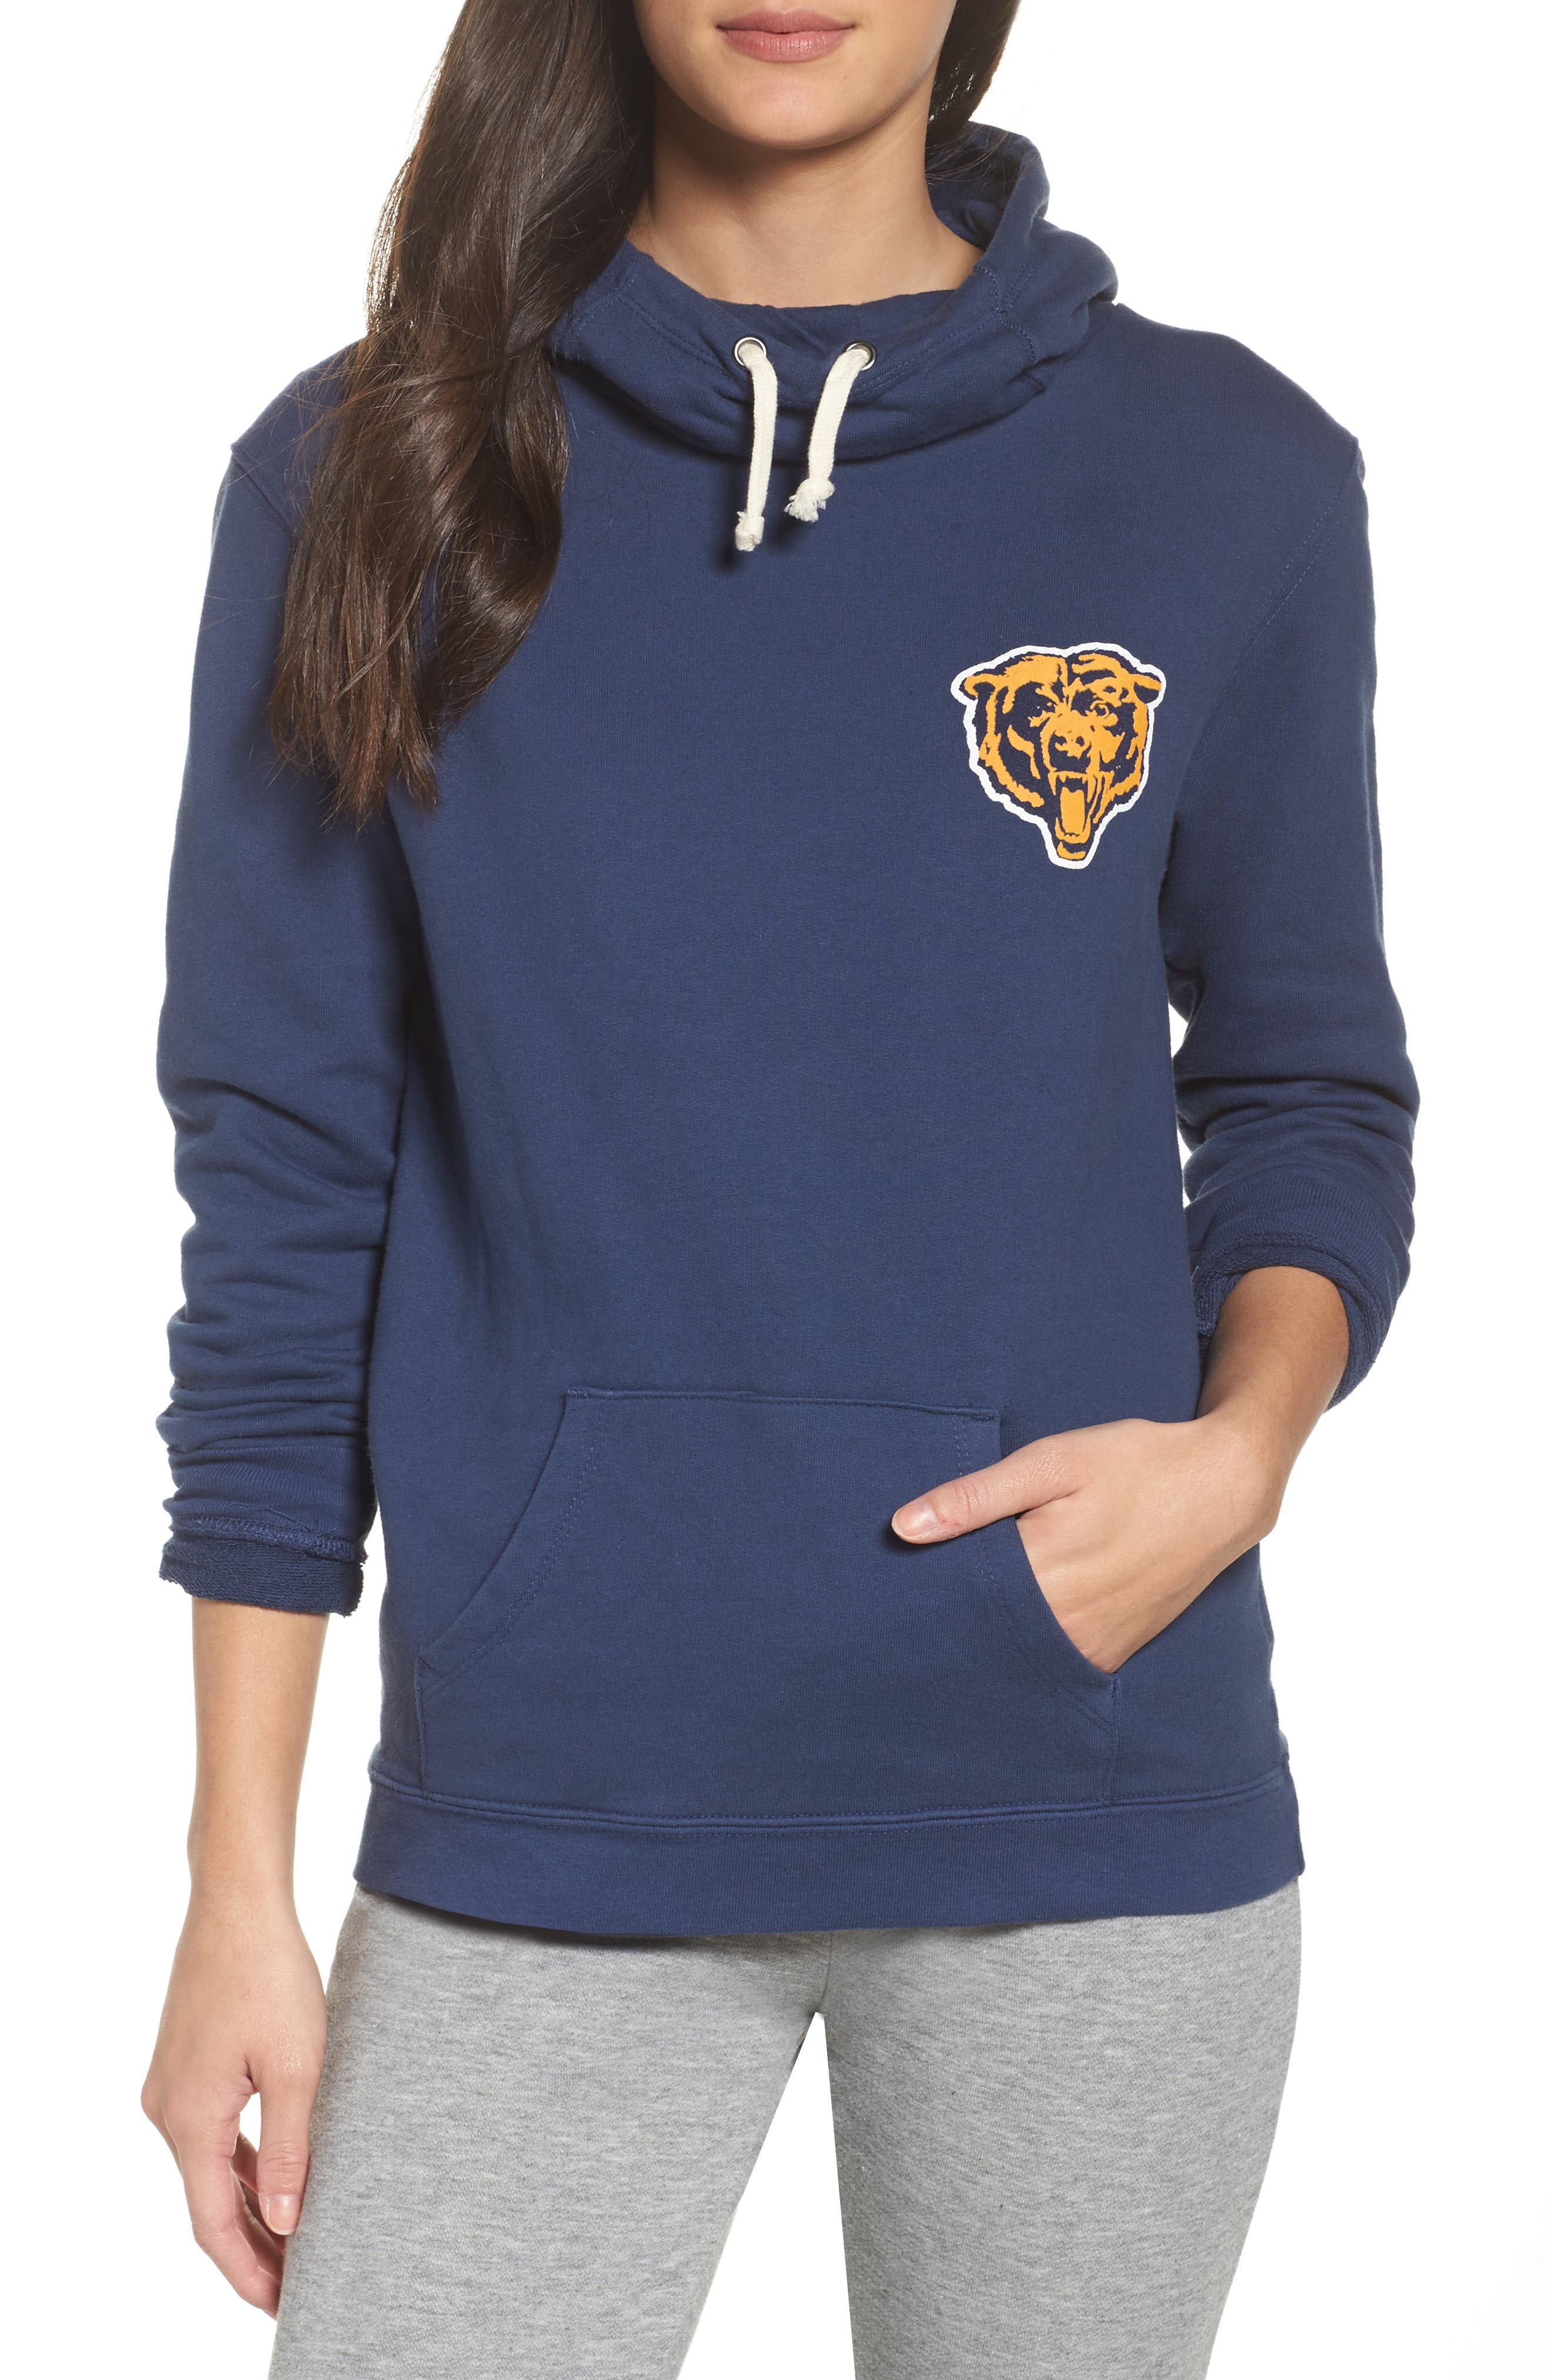 NFL Chicago Bears Sunday Hoodie,                         Main,                         color, True Navy